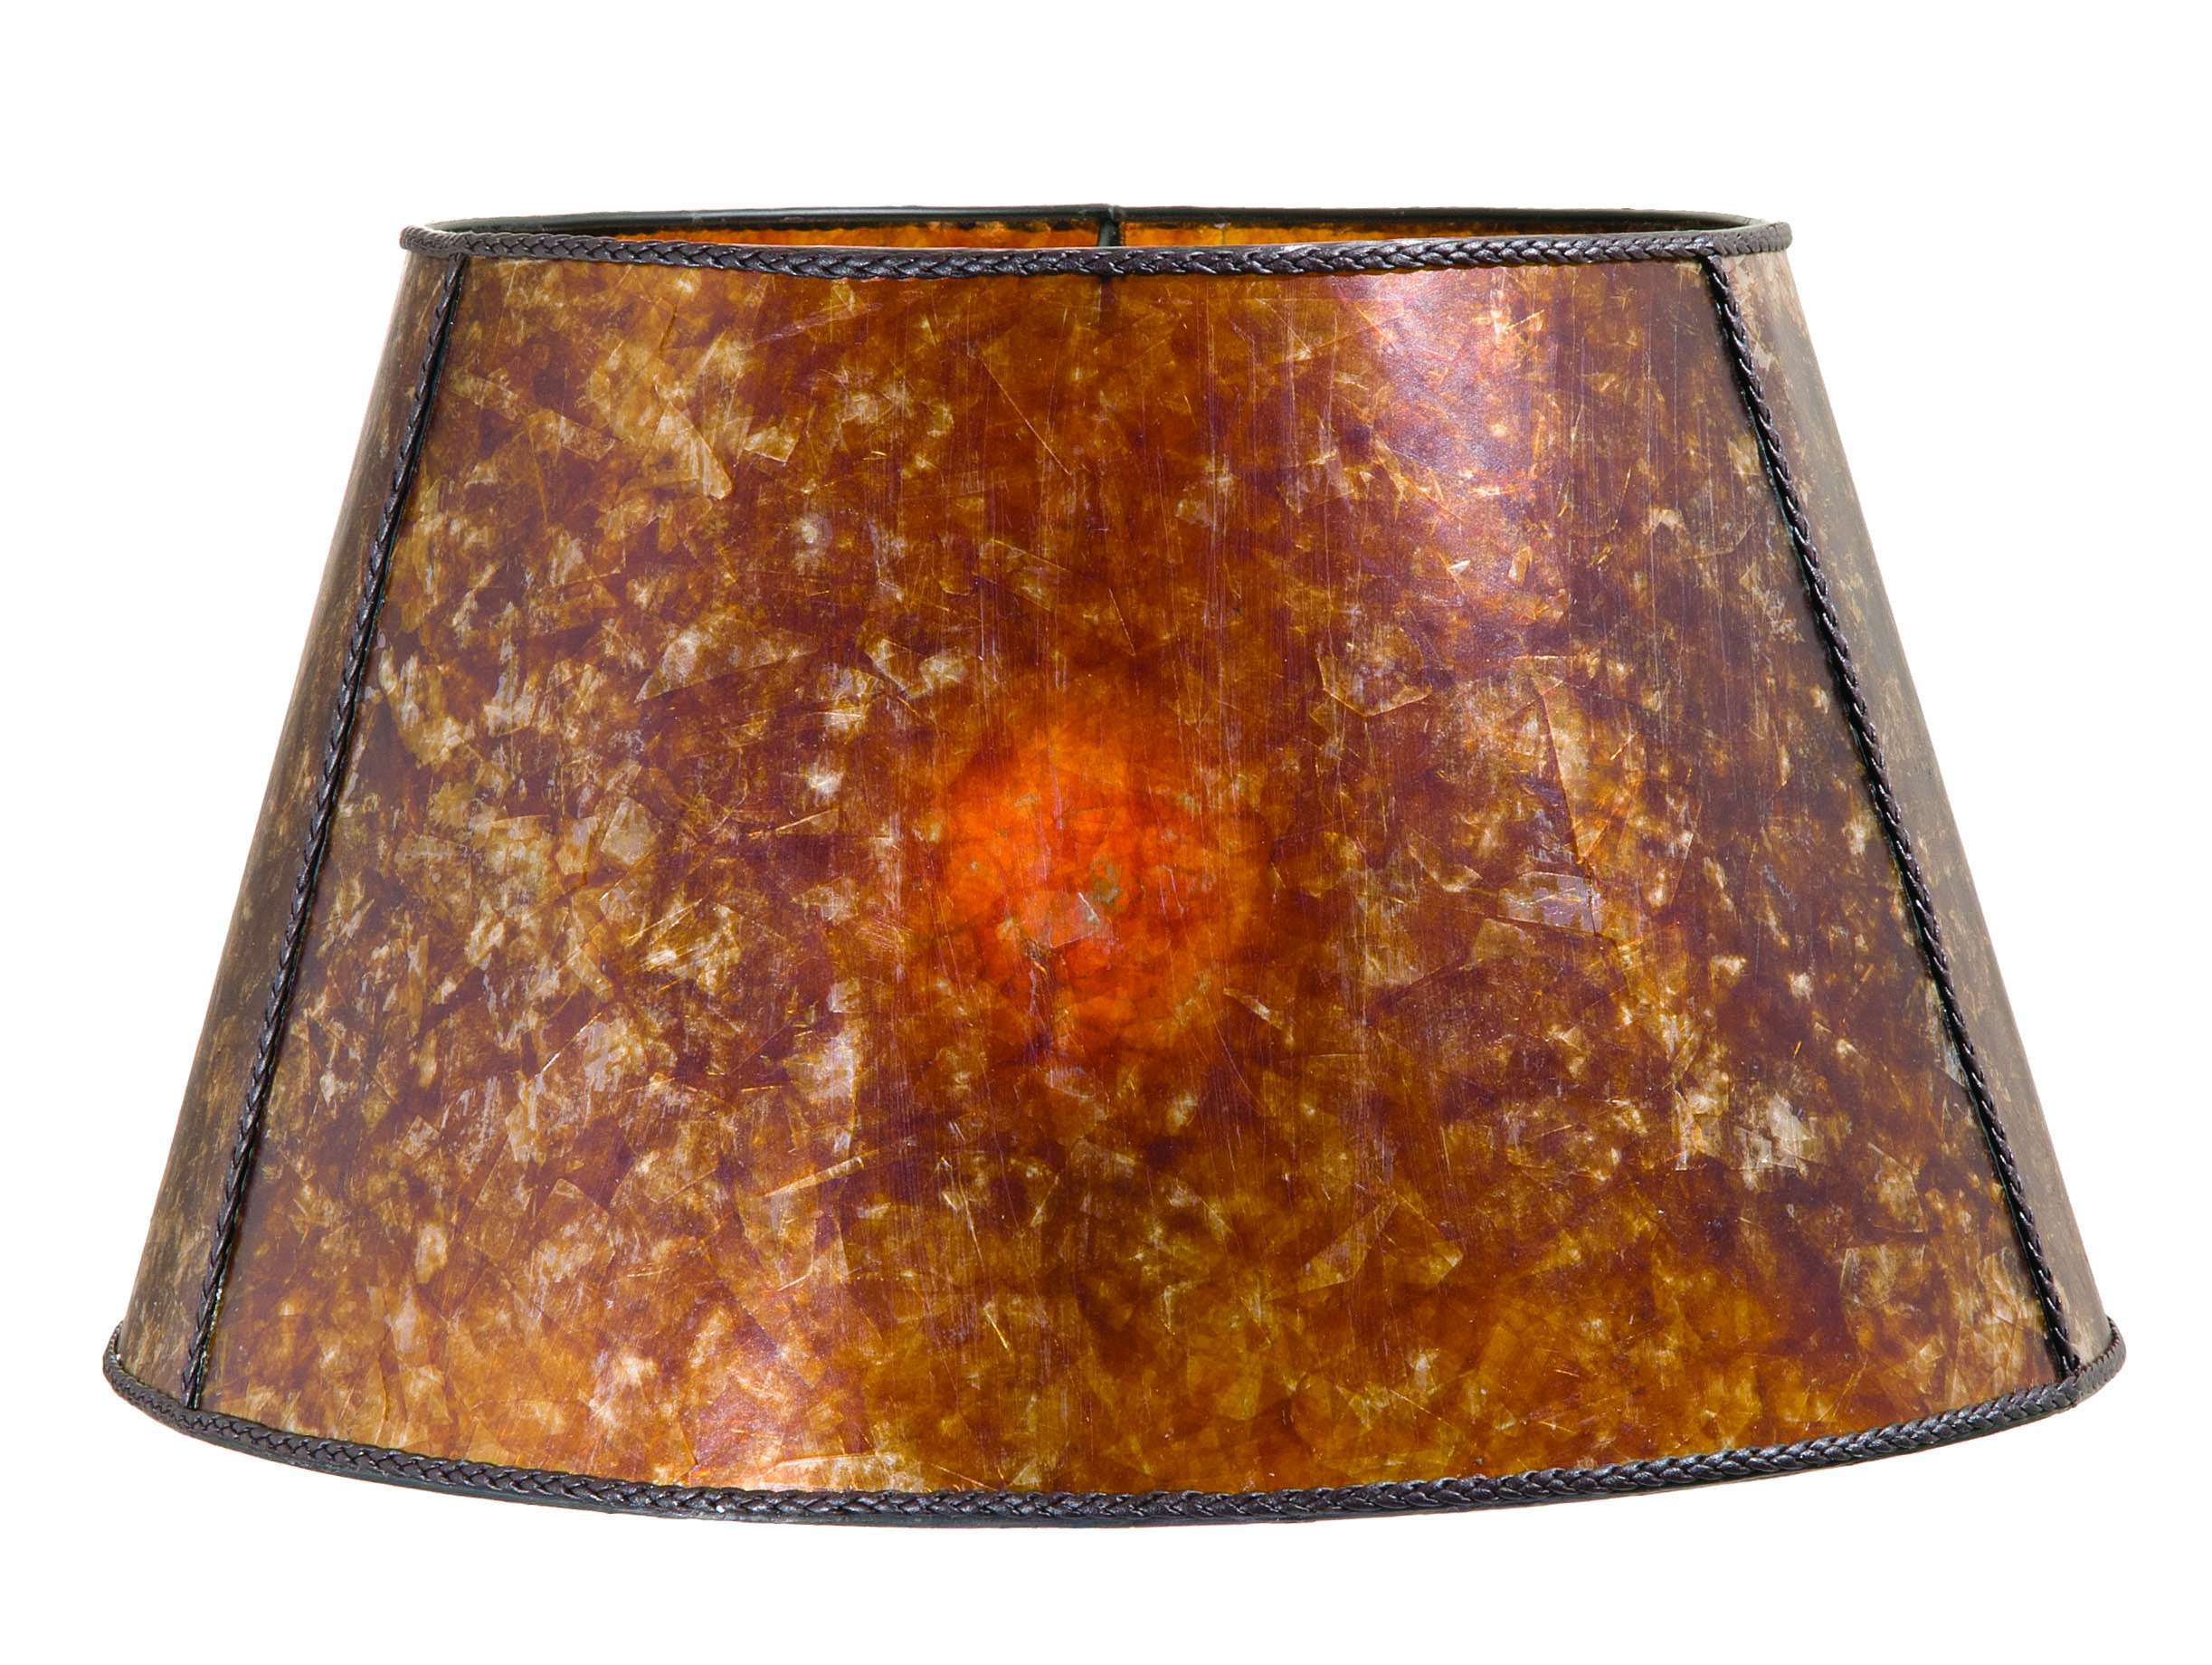 Amber Mica Empire Style Floor Lamp Shade 05719m B Amp P Lamp